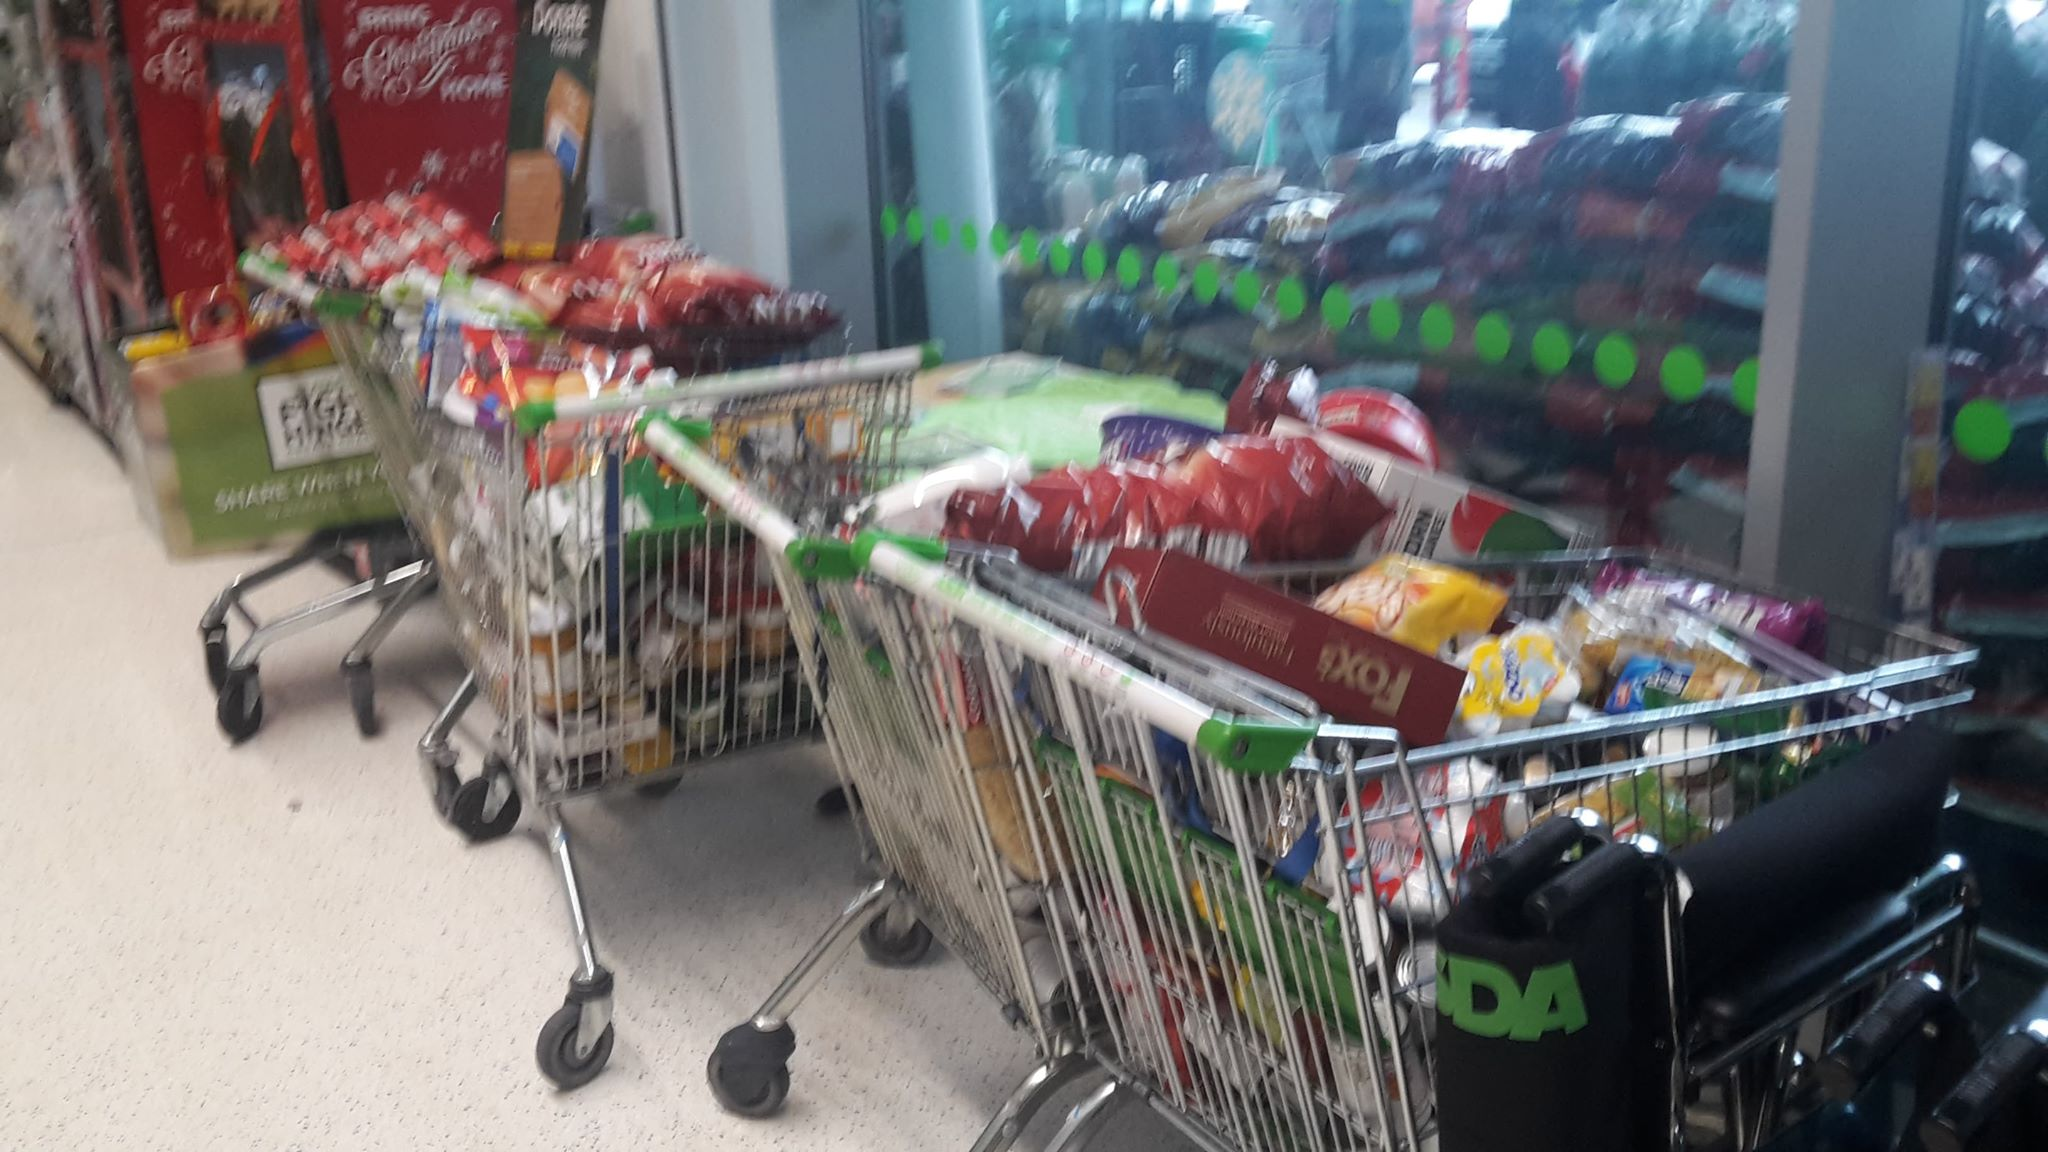 Asda blown away by the generosity of the Travellers community